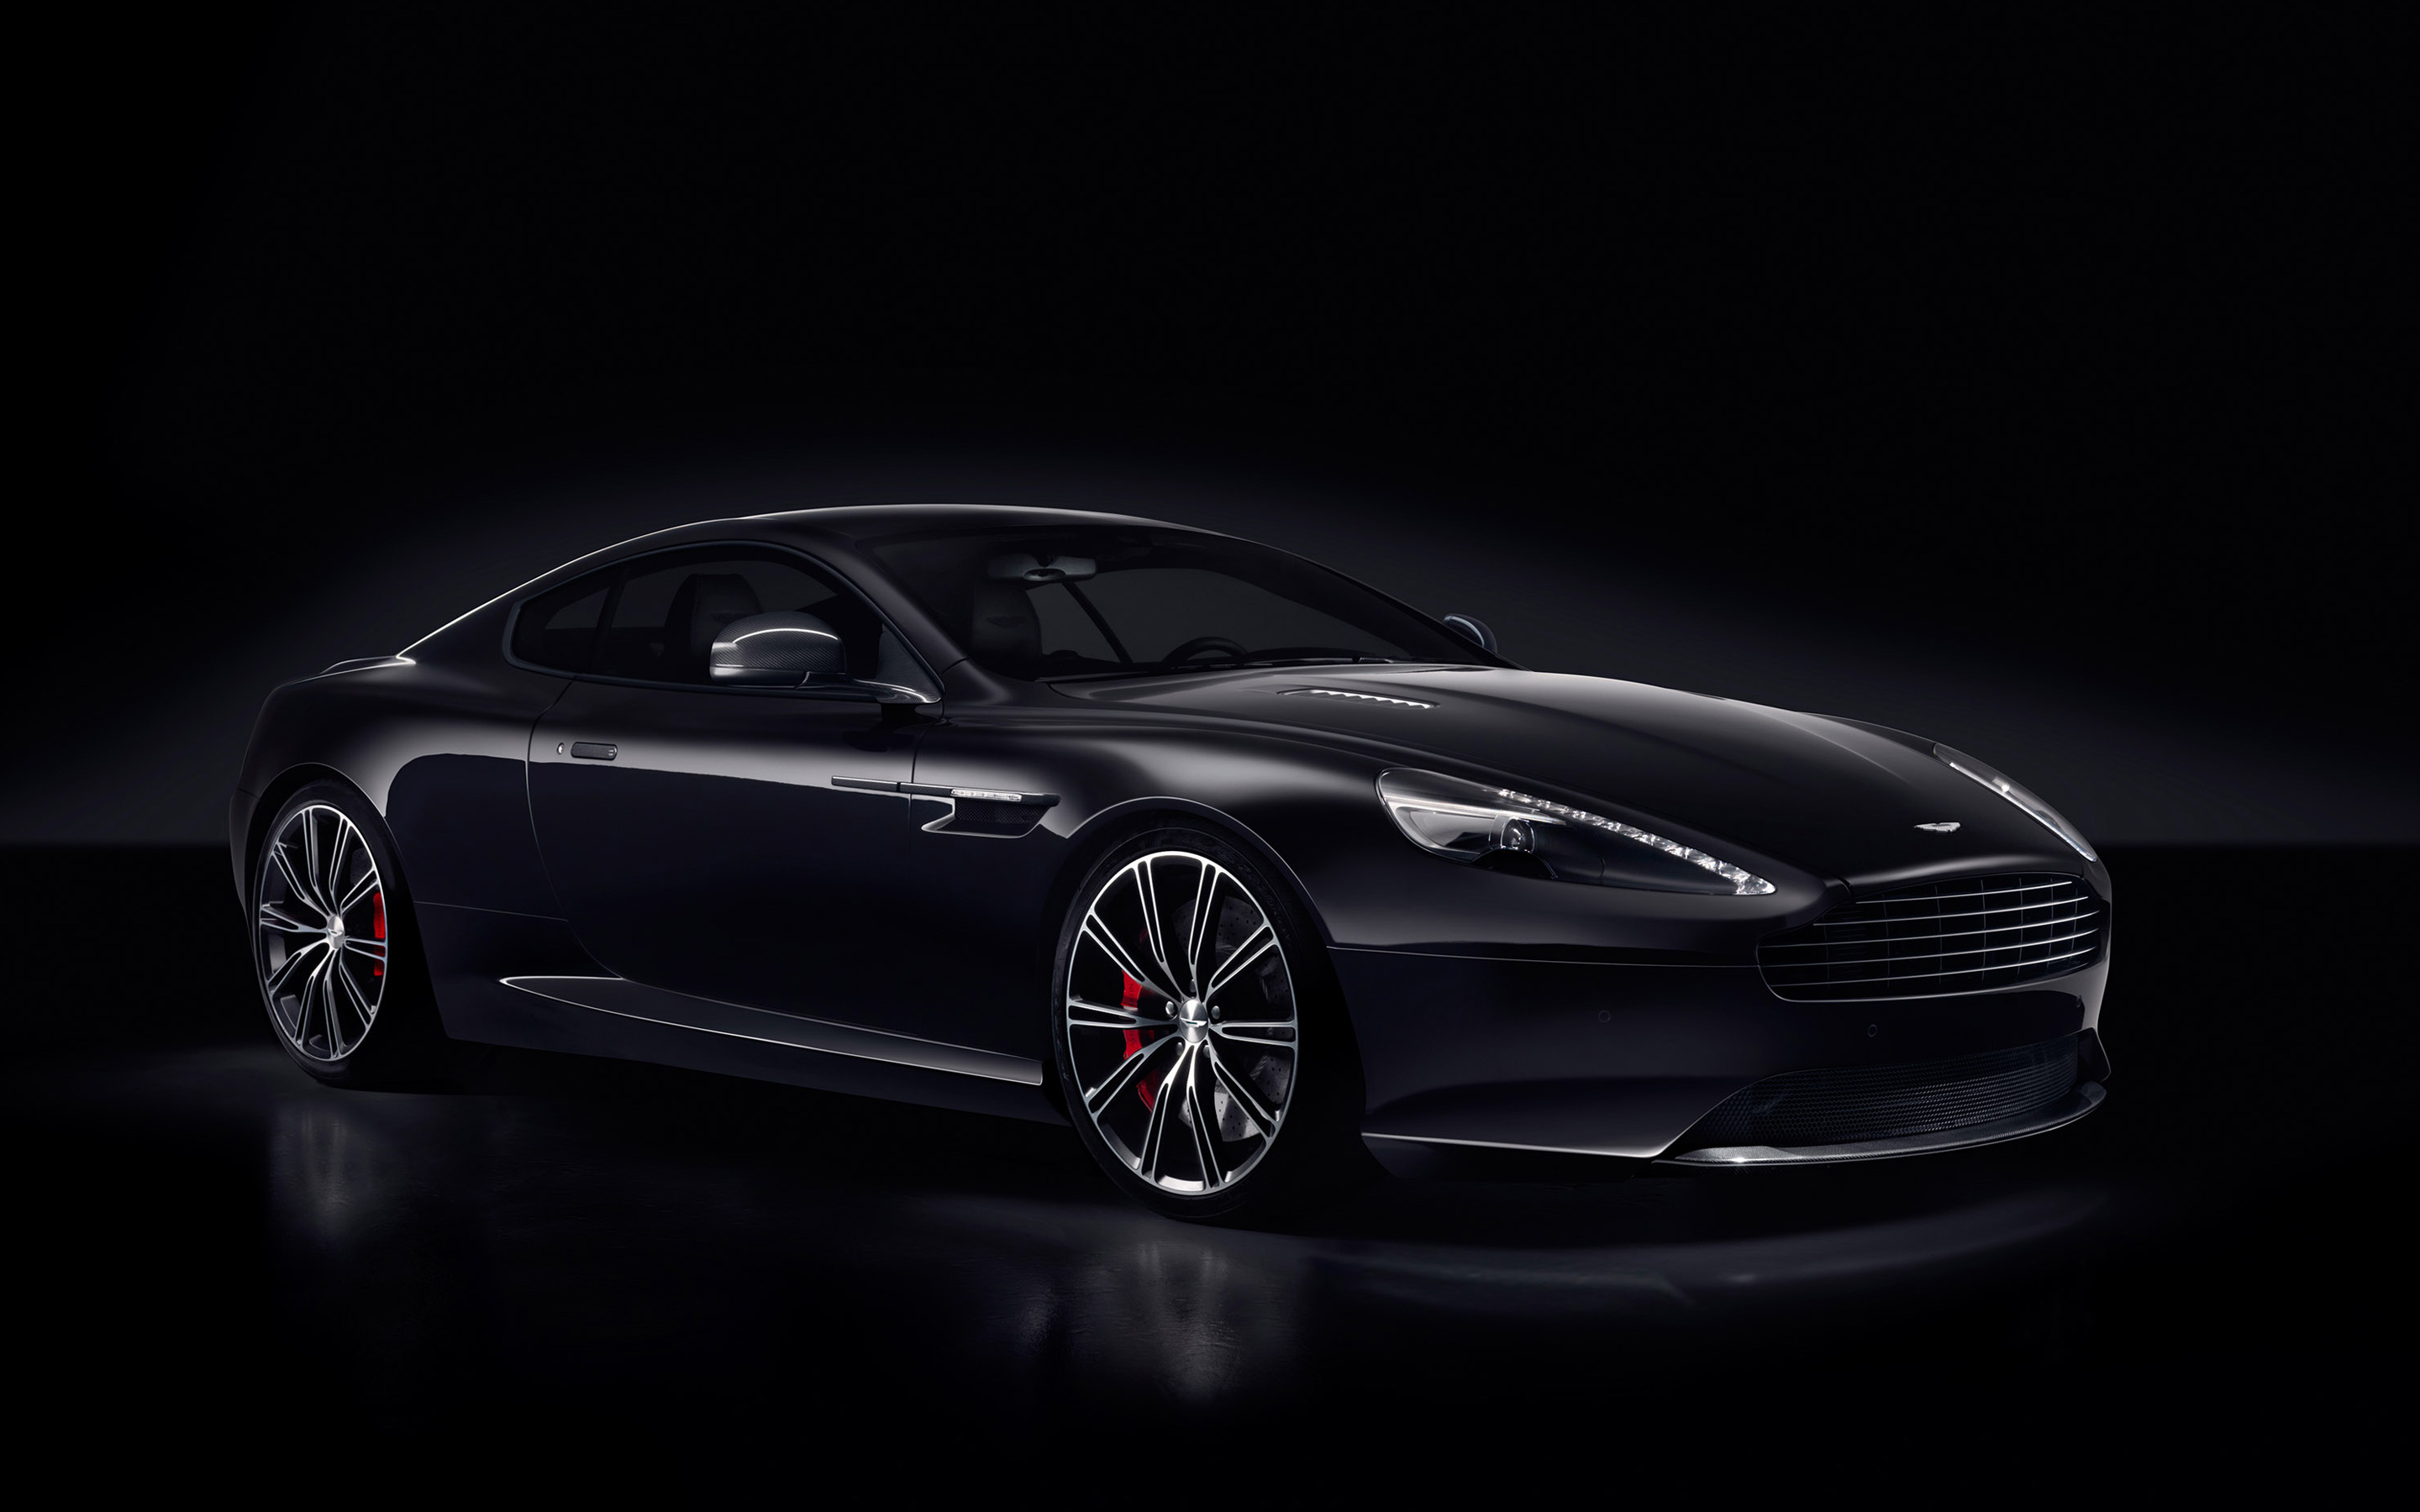 2015 Aston Martin DB9 photo - 2